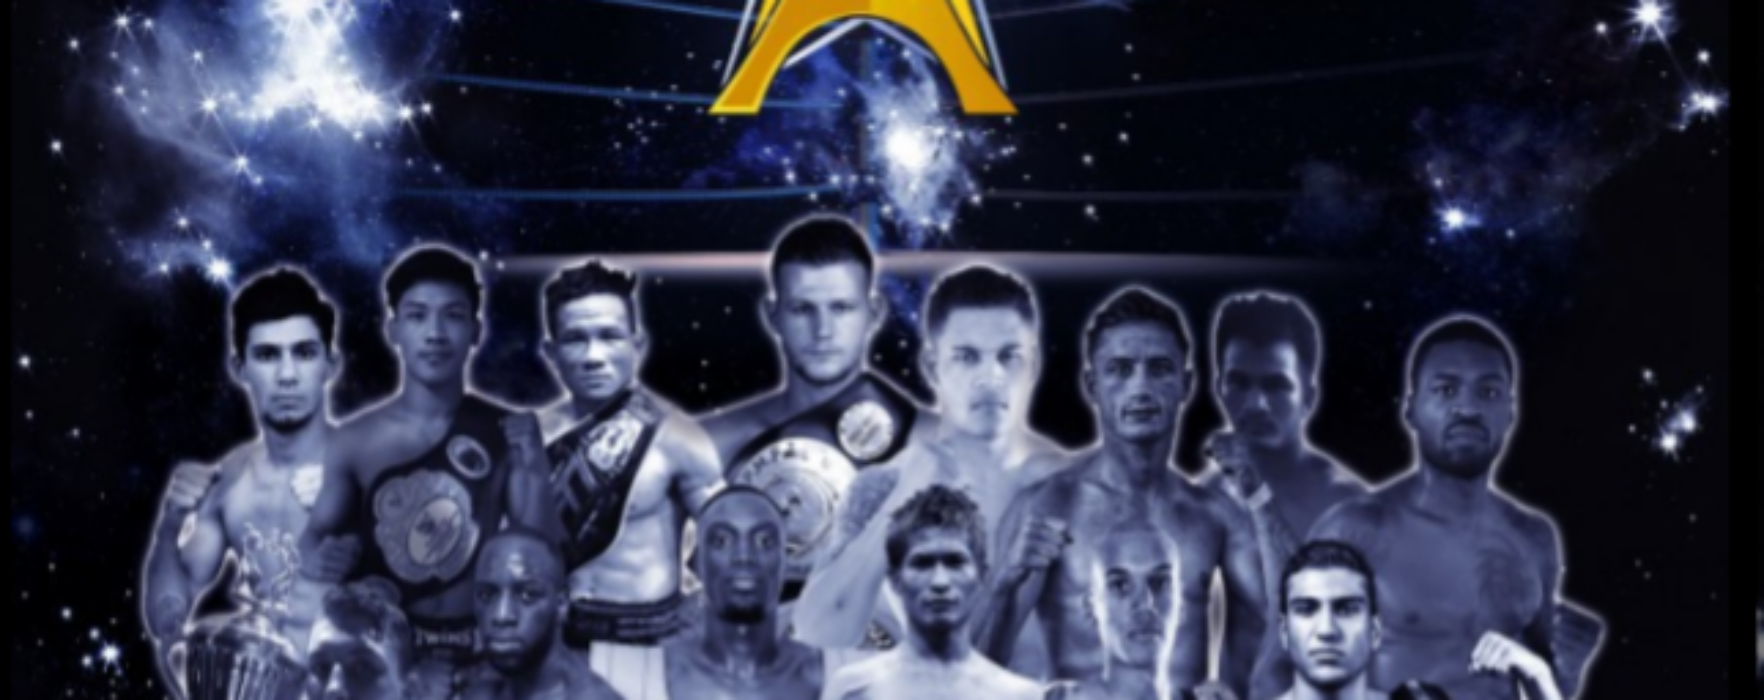 Risultati del veneto All star muay thai